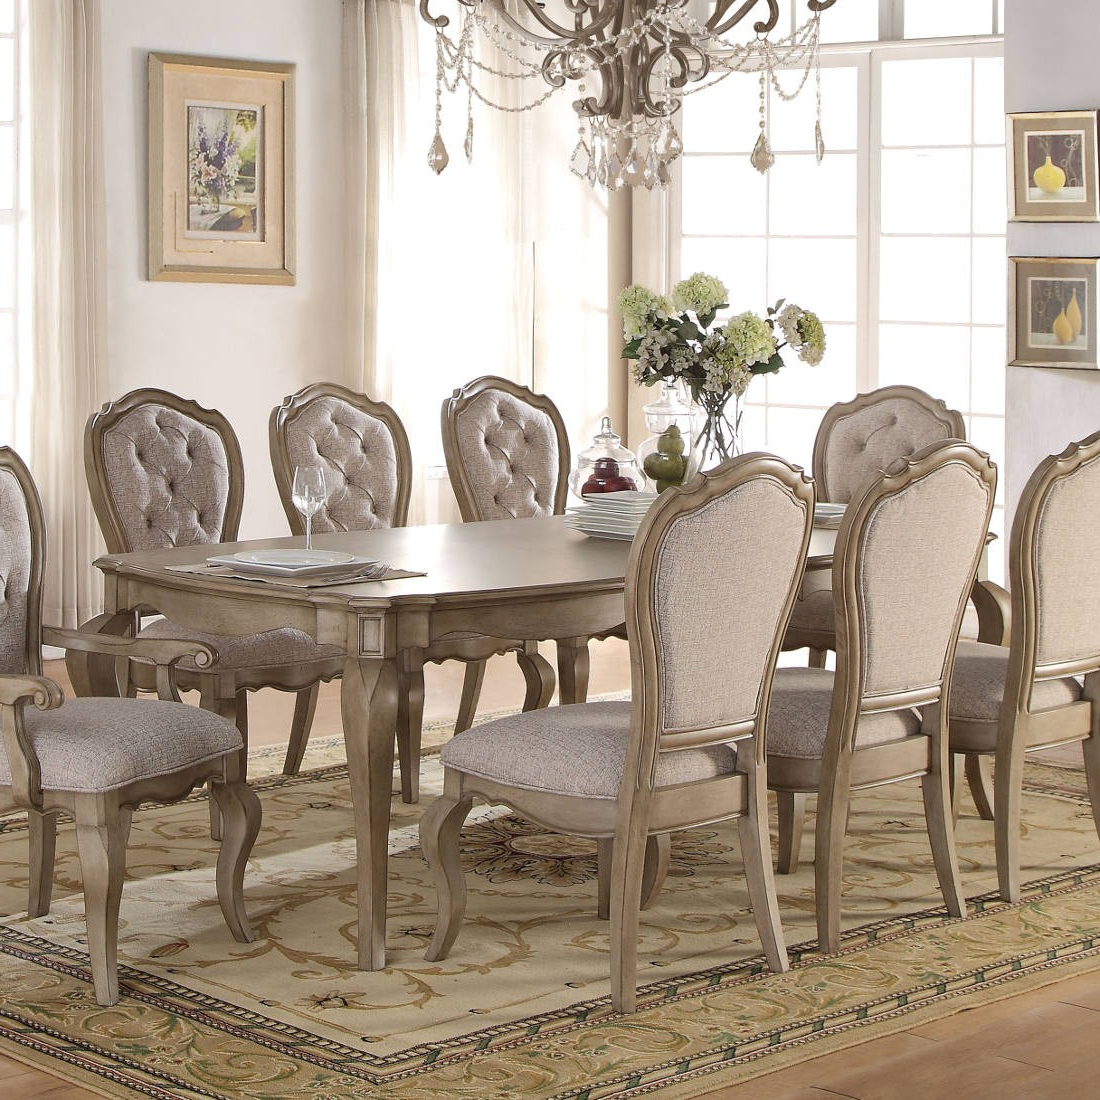 Well Known Chelmsford 3 Piece Dining Sets With Regard To Acme Chelmsford Dining Table In Antique Taupe (View 25 of 25)